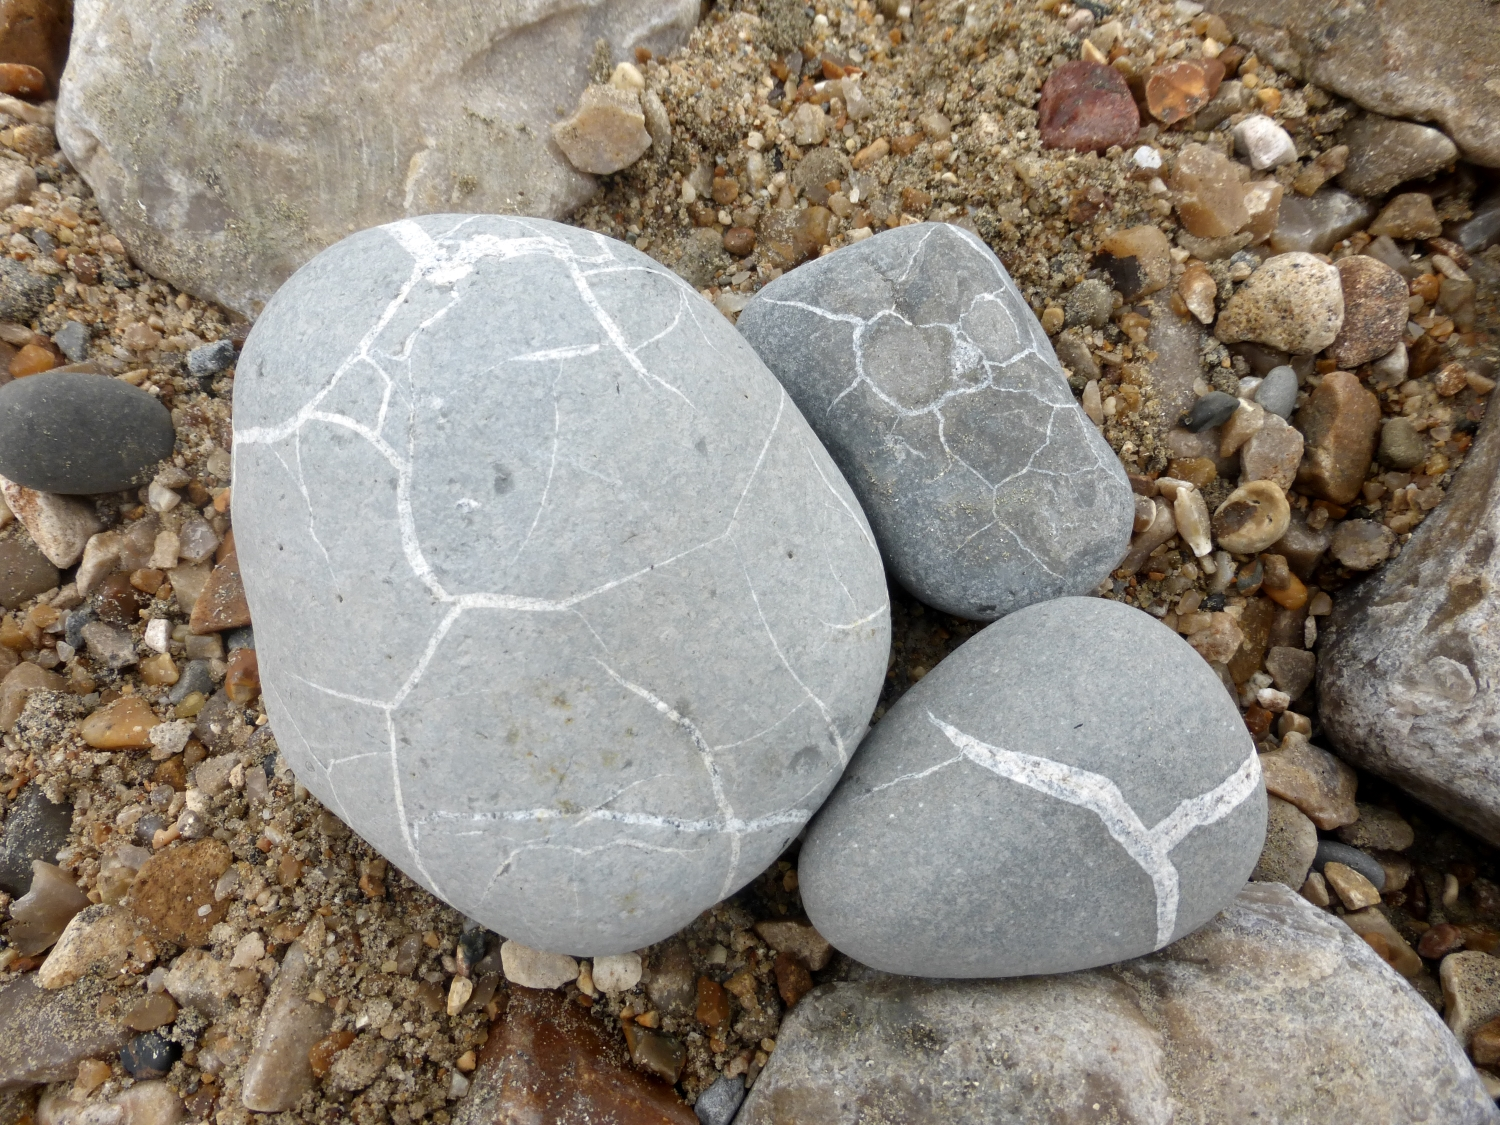 Could these be turtle shells and cracked dinosaur eggs?